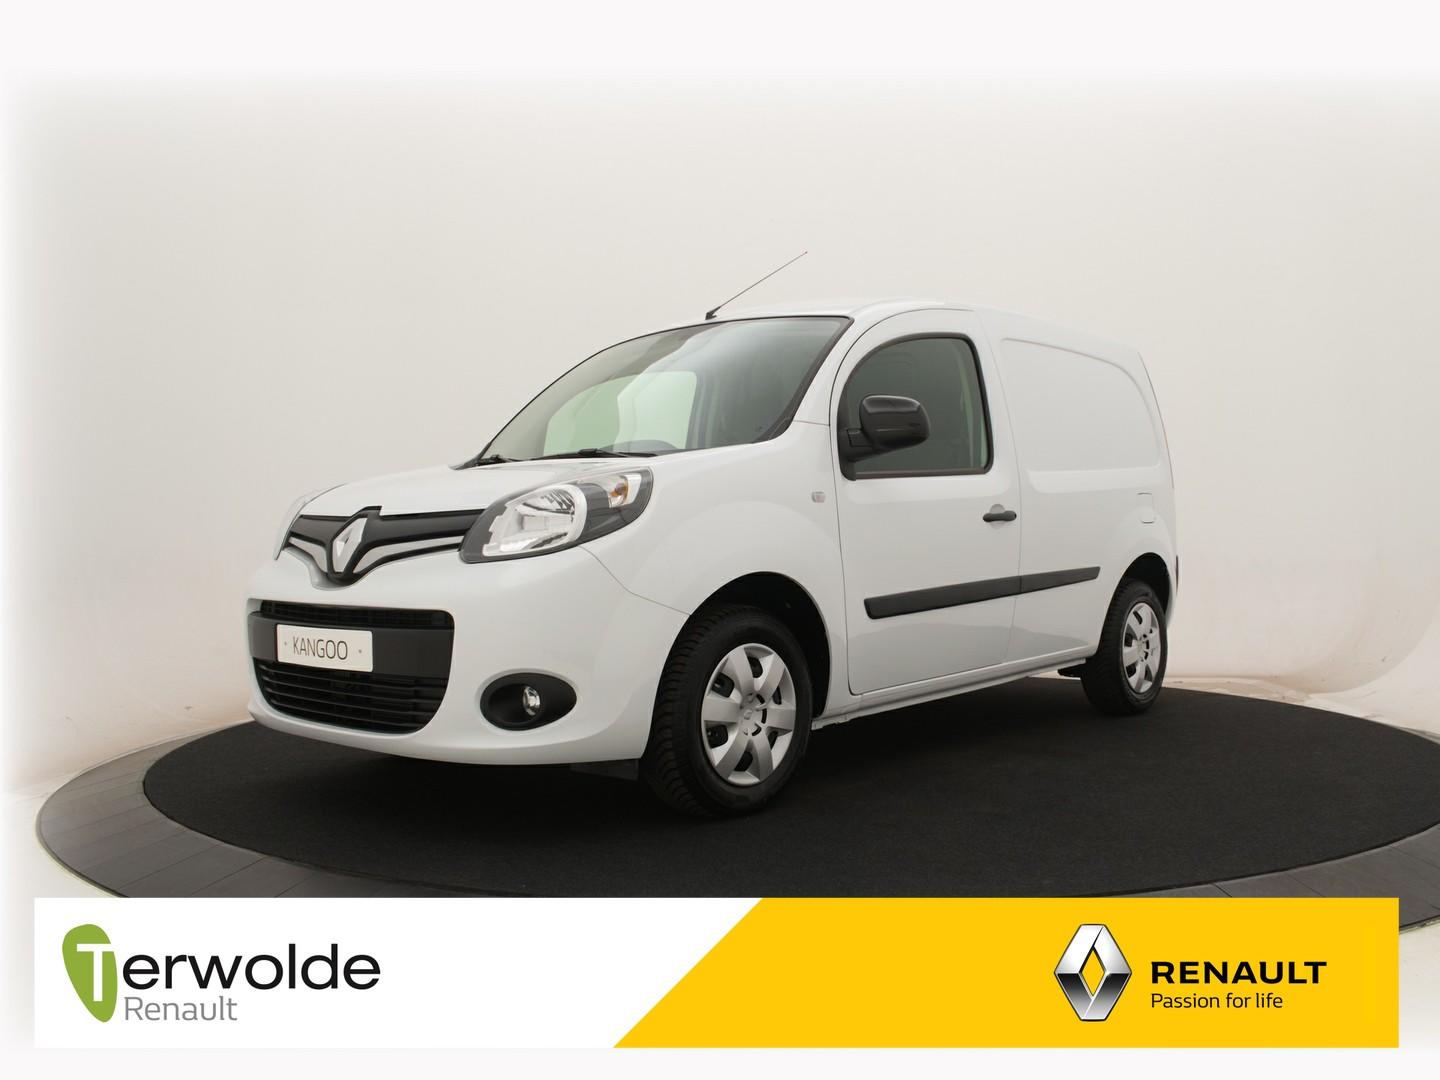 Renault Kangoo 1.5 dci 90 energy work edition